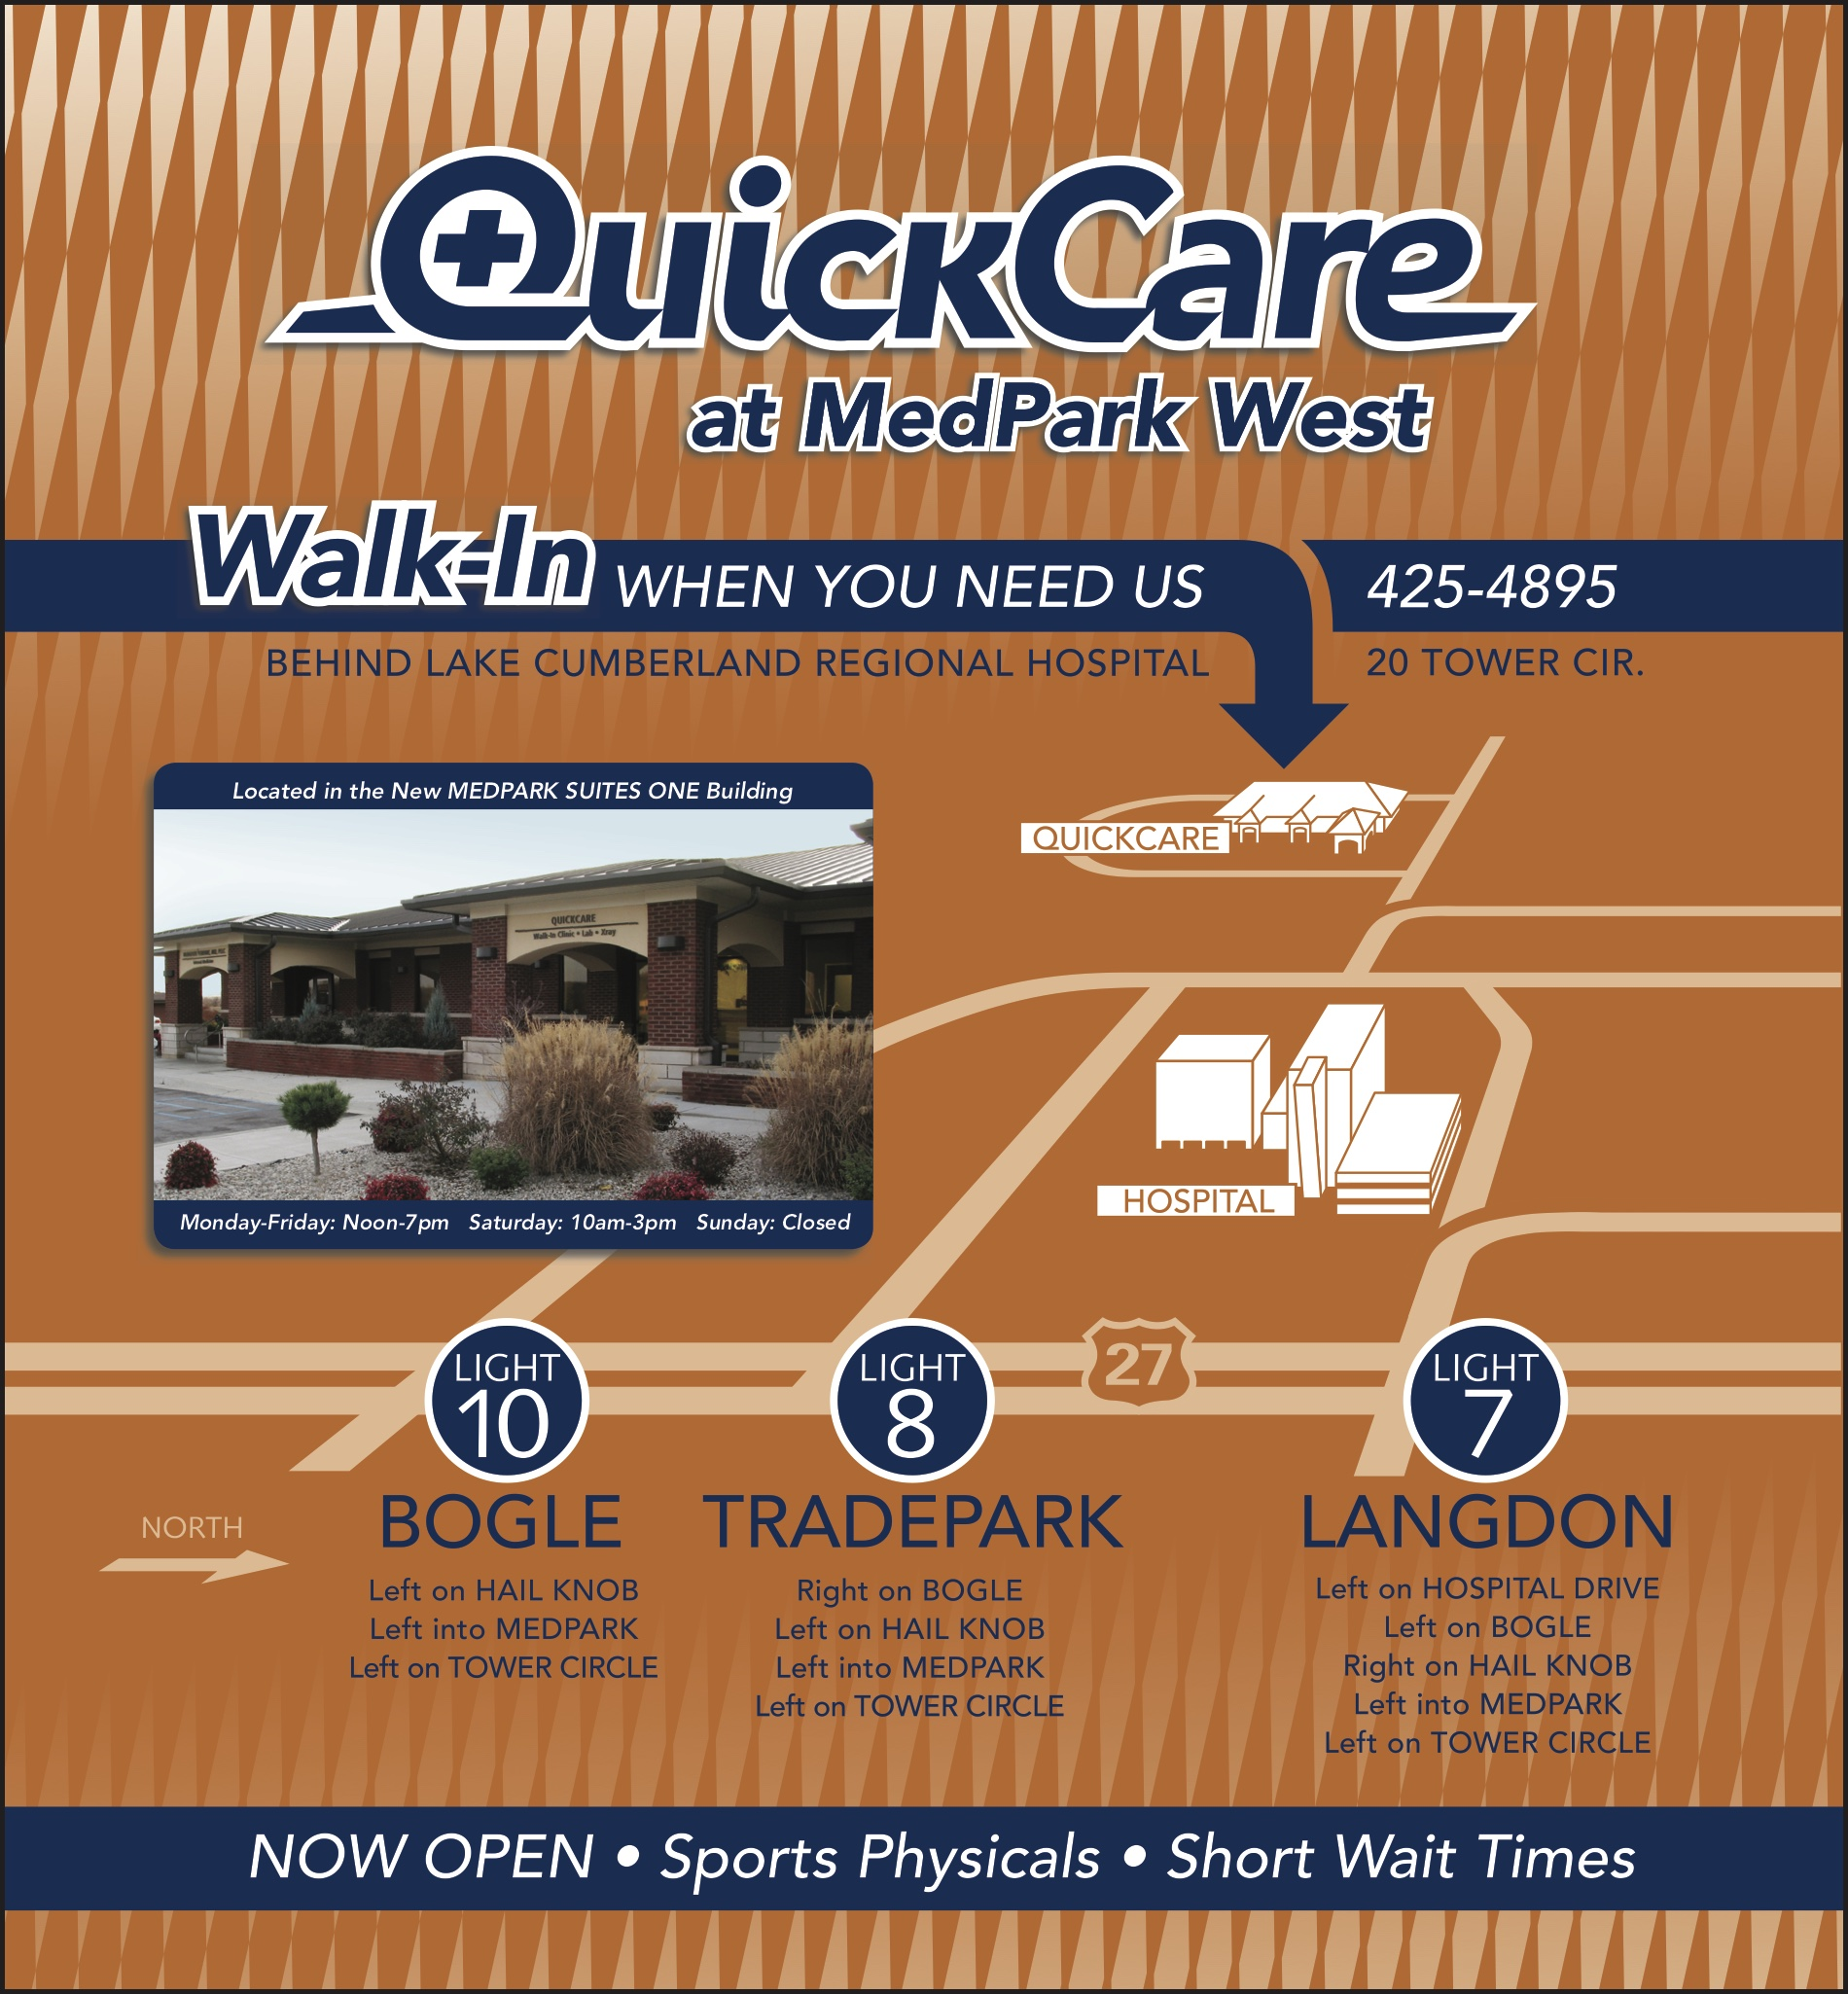 QuickCare At MedPark West Map Somerset Kentucky